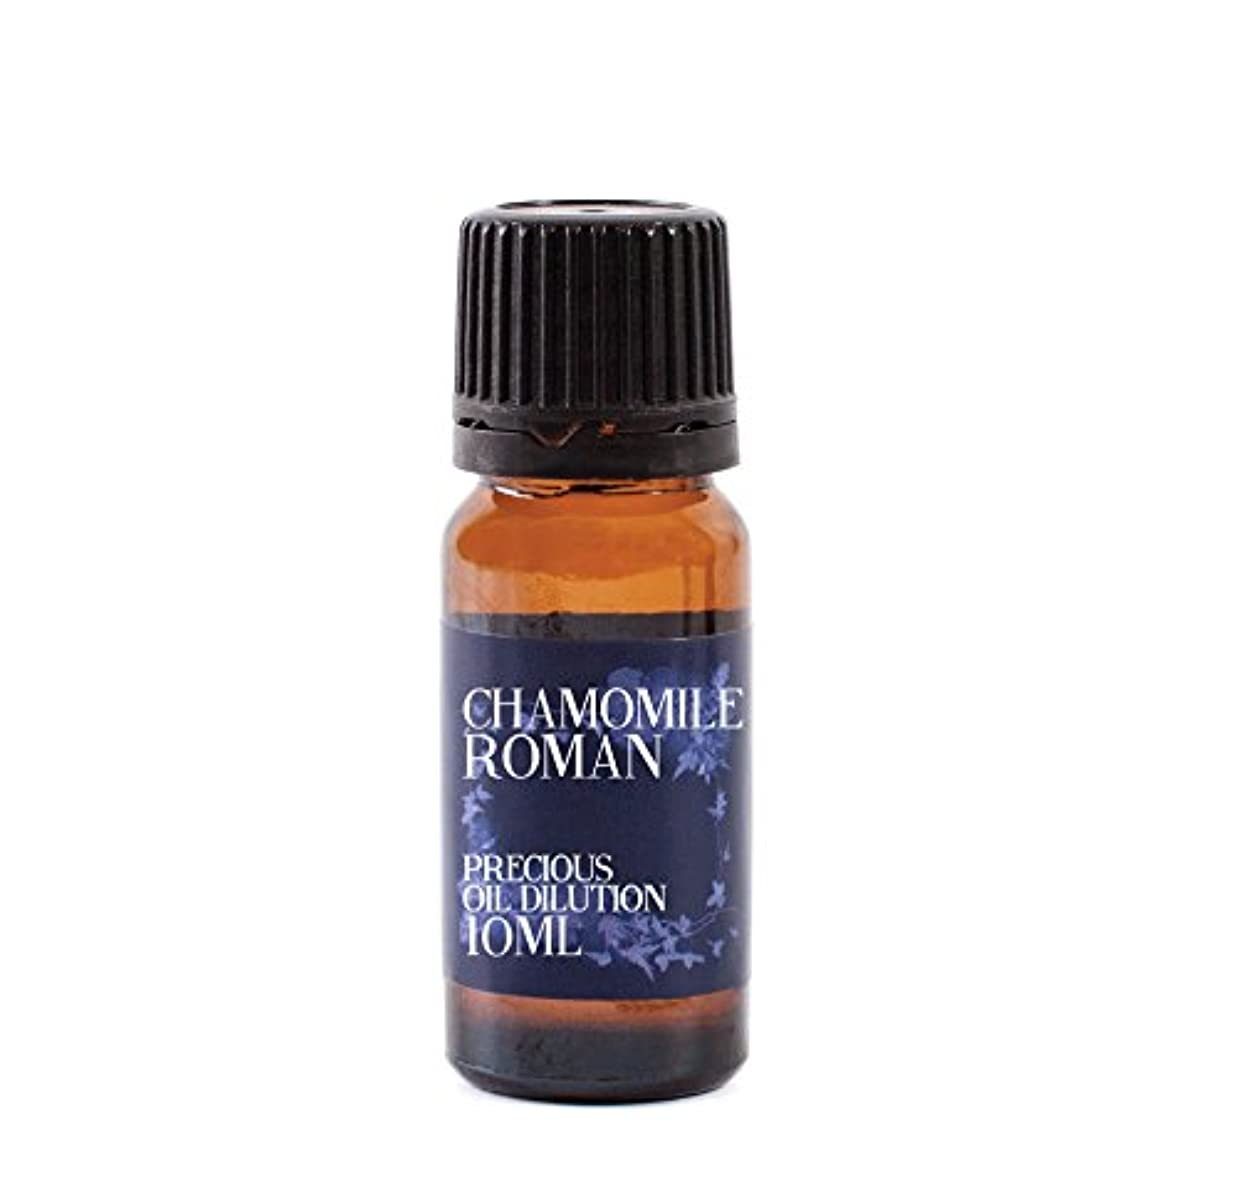 Mystic Moments | Chamomile Roman Essential Oil Dilution - 10ml - 3% Jojoba Blend